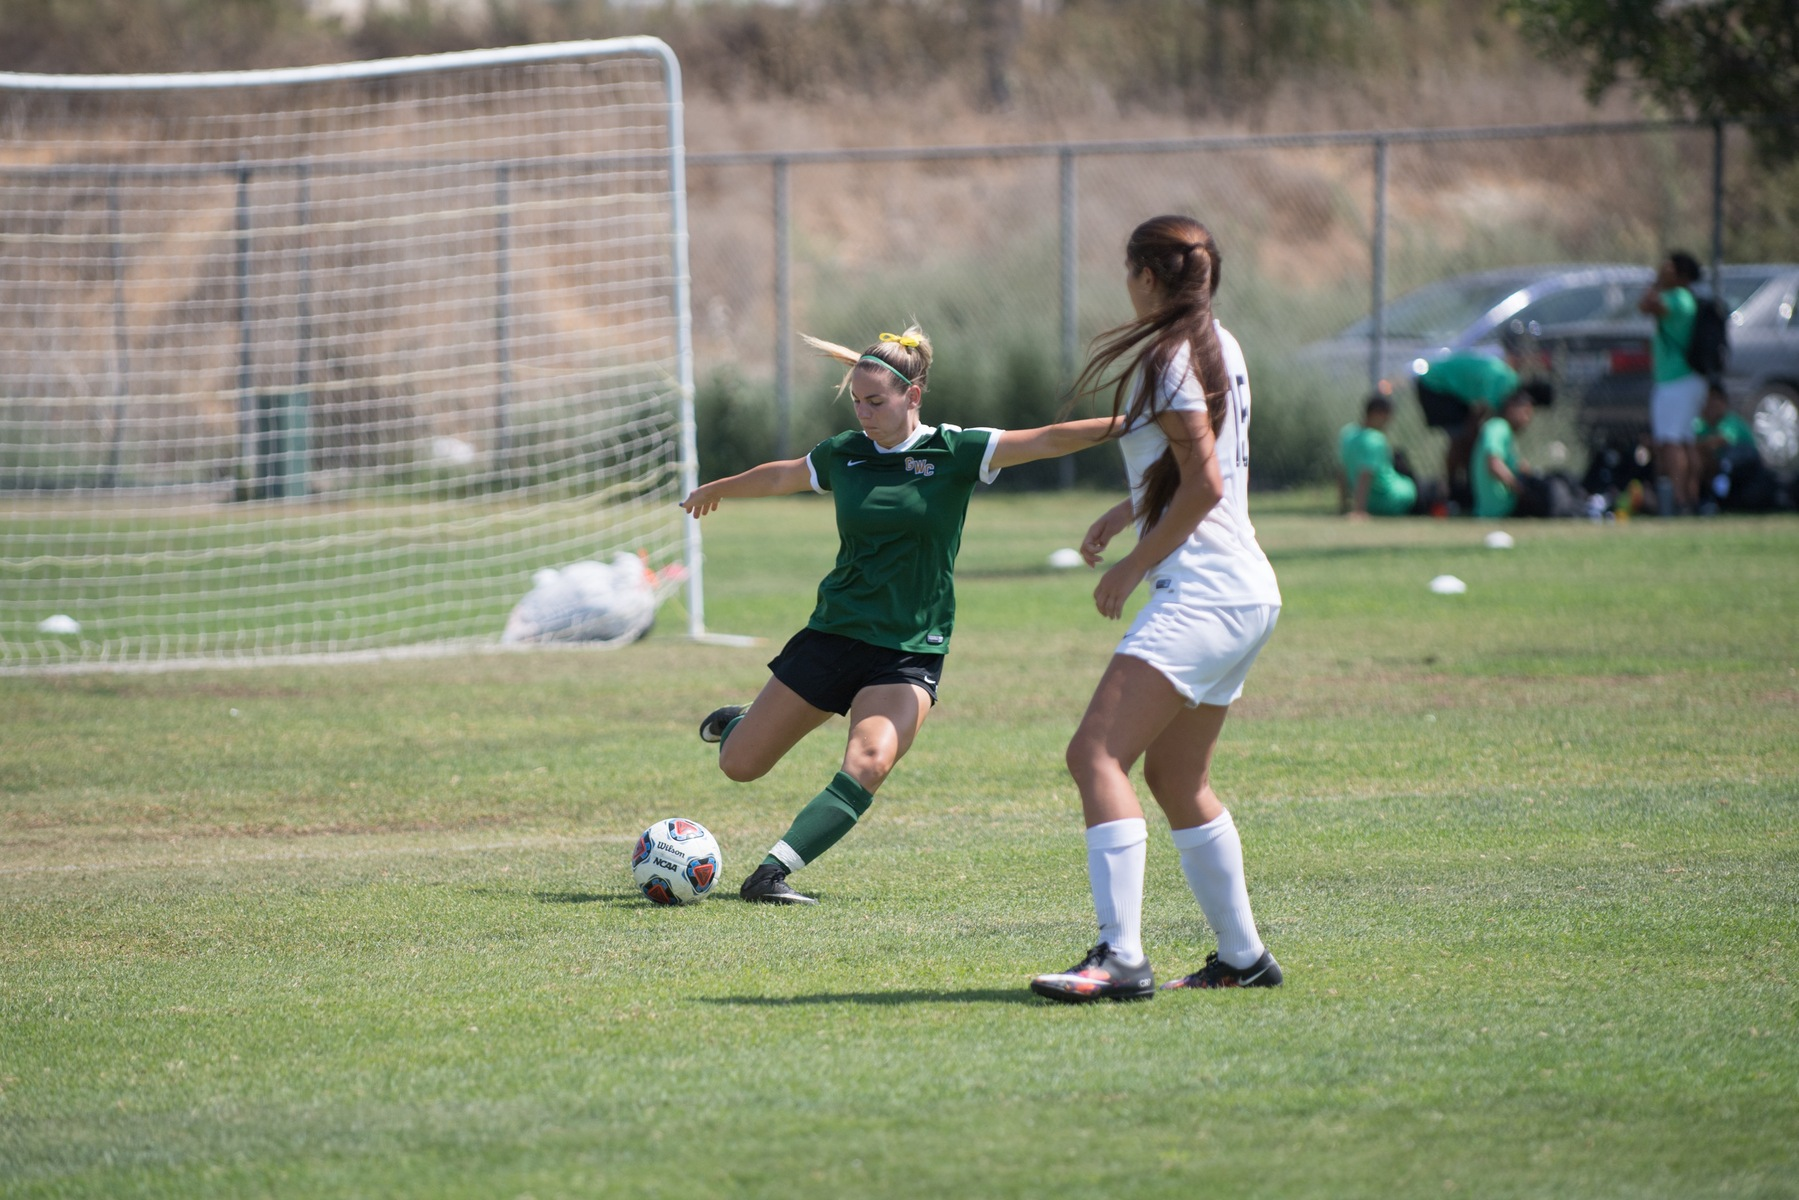 W Soccer: Offense Gets Back on Track in Victory